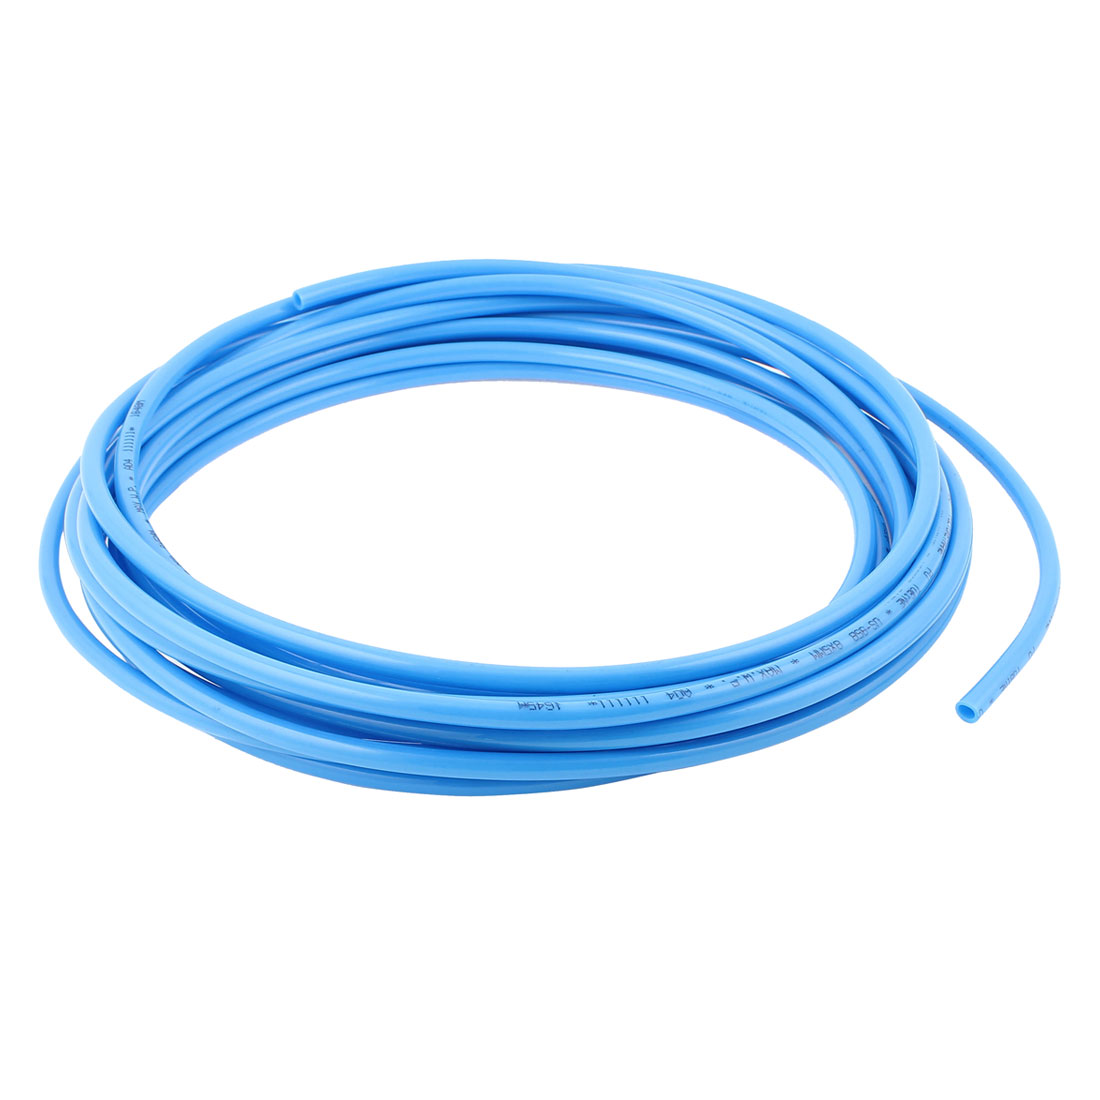 UXCELL 8Mm X 5Mm Pneumatic Air Compressor Tubing Pu Hose Tube Pipe 9.5M Blue приемник телевизионный dvb t2 harper hdt2 1108